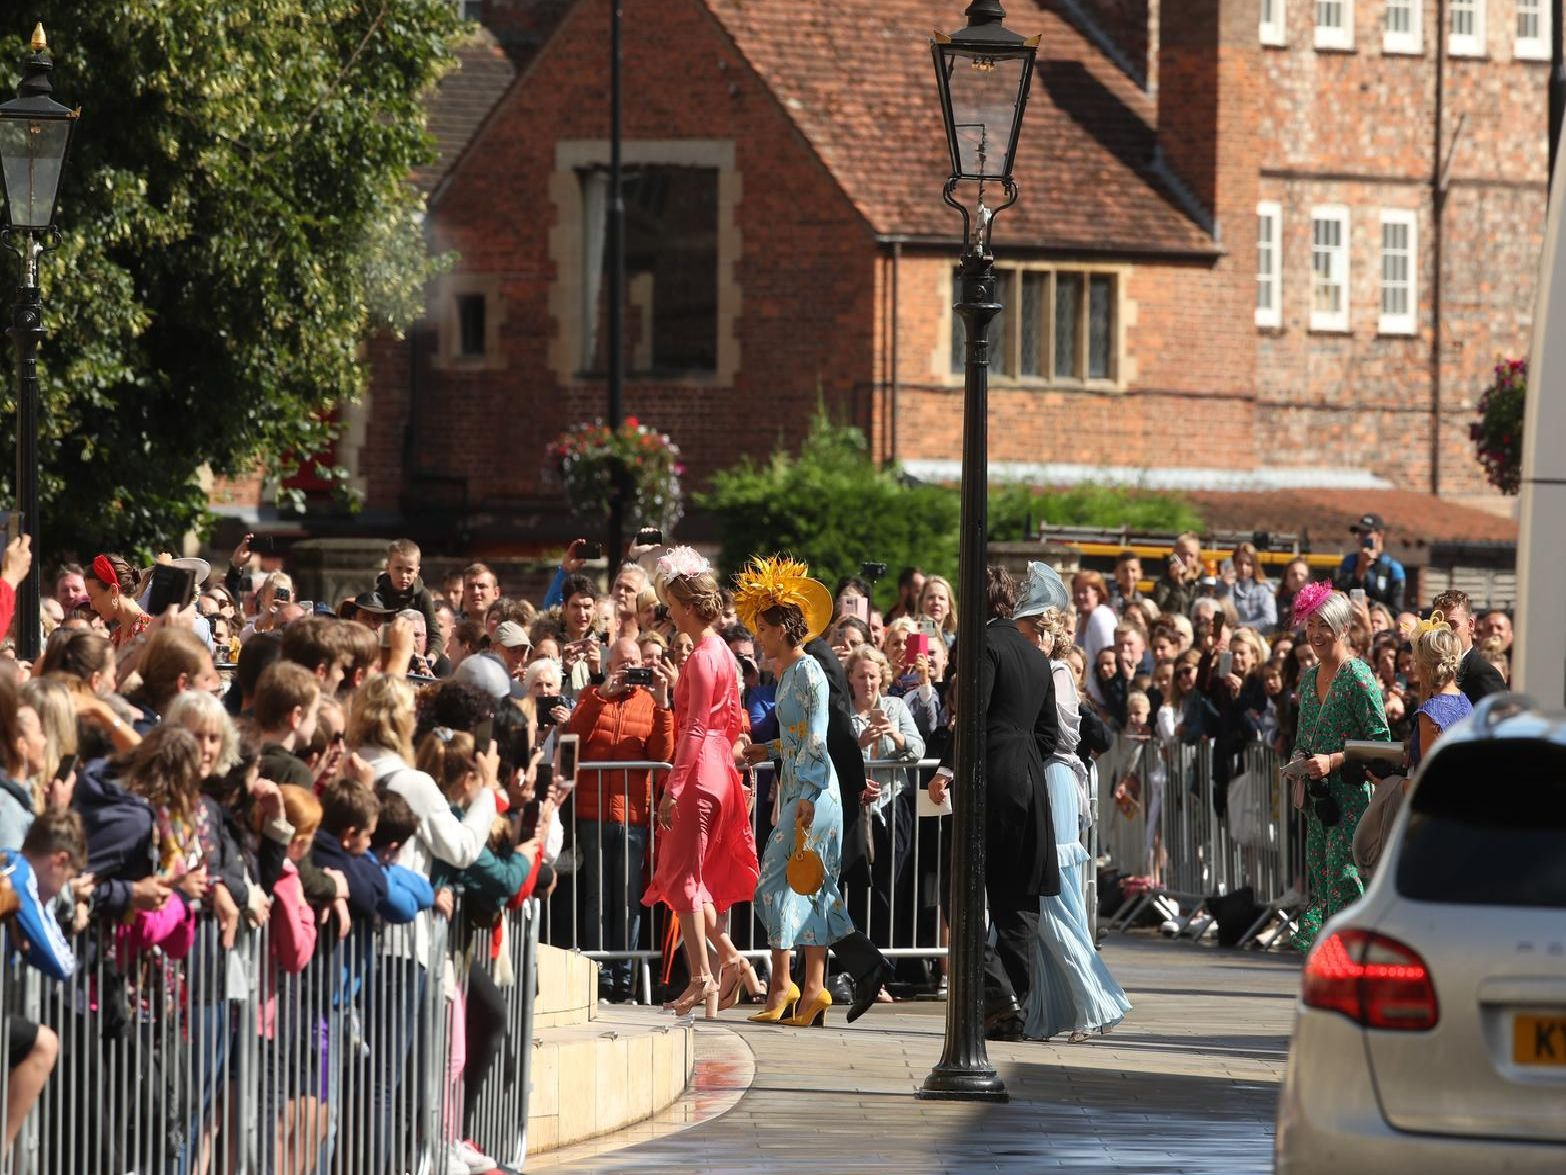 Crowds gather outside York Minster as the guests arrive